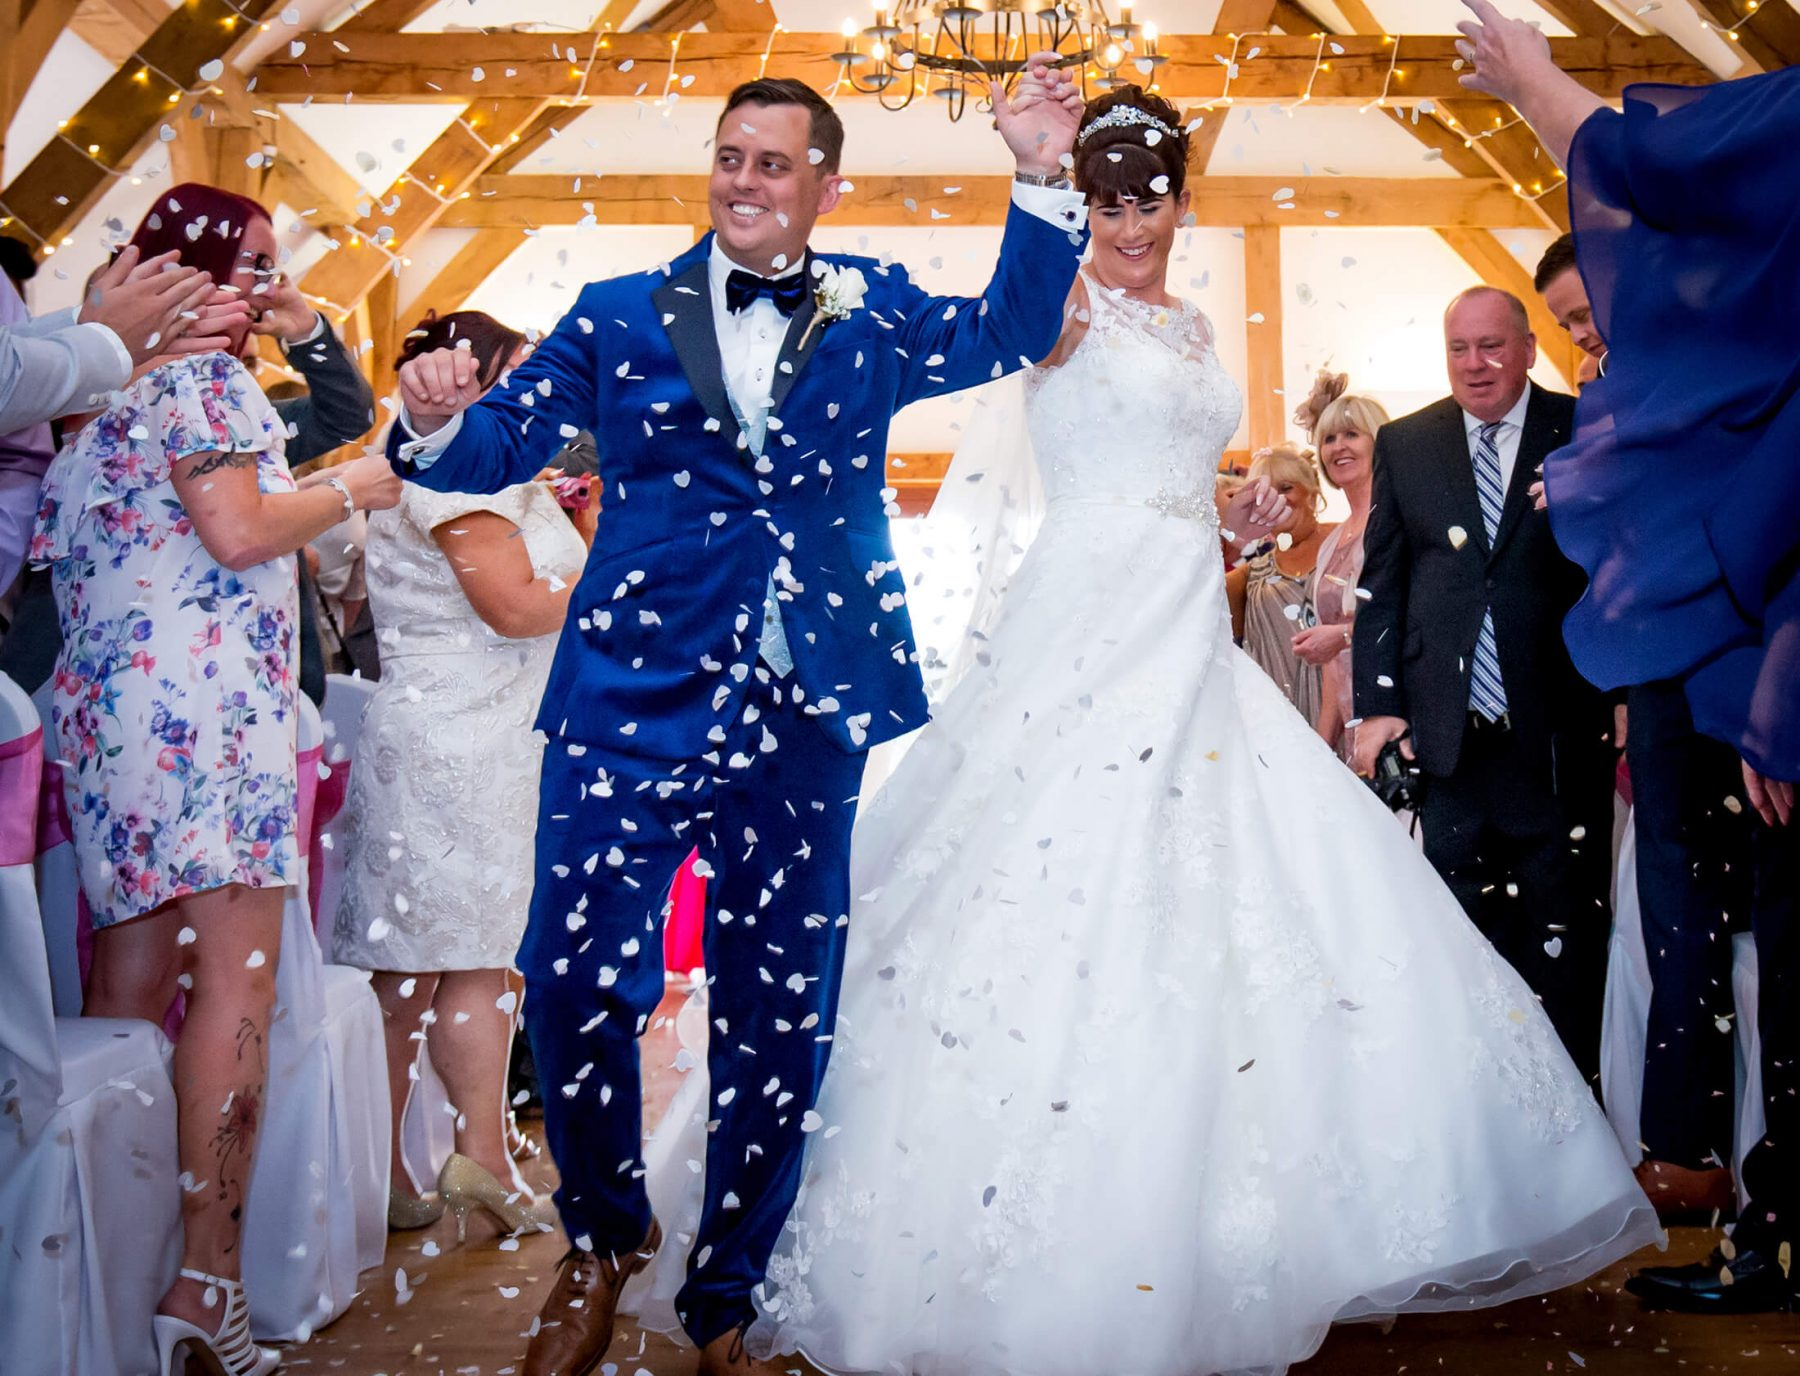 The bride and groom dance down the aisle following their wedding at Sandhole Oak Barn in Cheshire. Sandhole Oak Barn Wedding Photographer